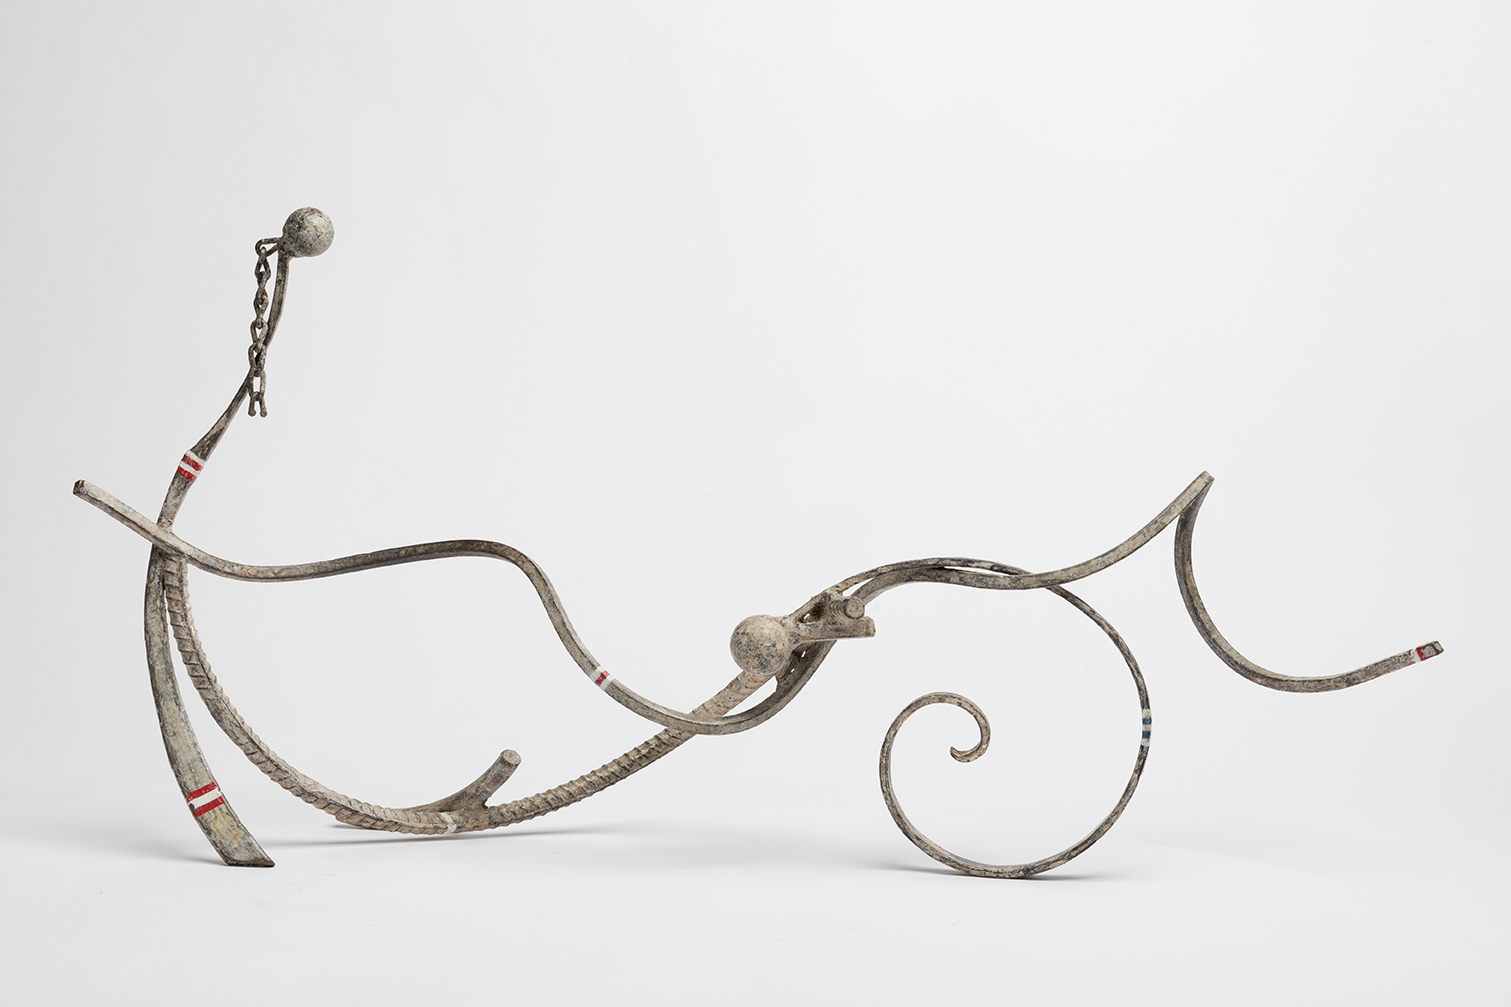 Lee Tribe,  Bather 17. May Mirth Marie-Thérèse,  2016, steel, formed, welded, paint and wax, 15 x 30 ½ x 8""